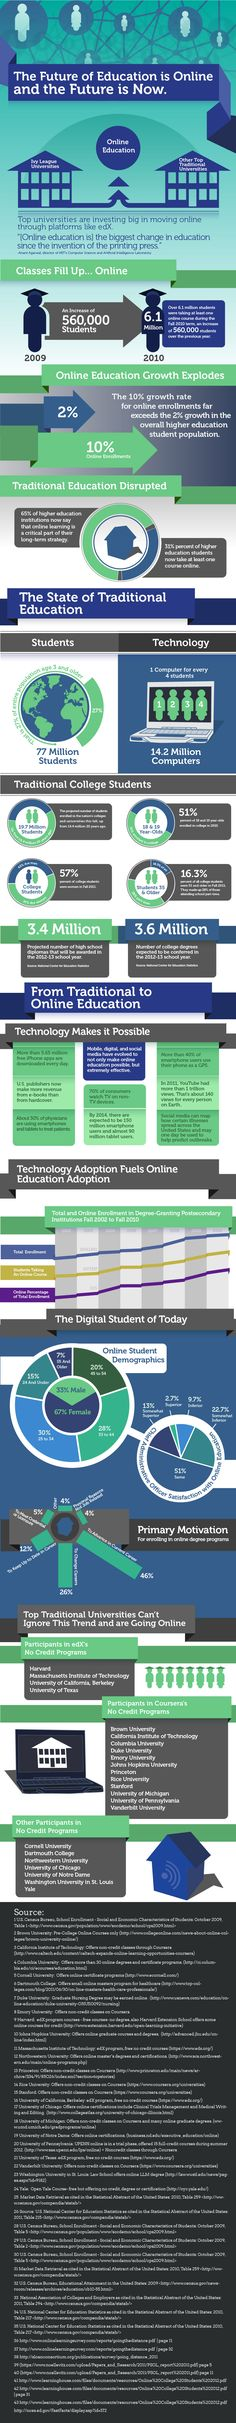 The future of education is online! See our InfoGraphic now for a thorough, informative look at the statistics behind the online education revolution. Teaching Technology, Educational Technology, Educational Innovations, E Online, E Learning, Blended Learning, Continuing Education, Higher Education, Flipped Classroom